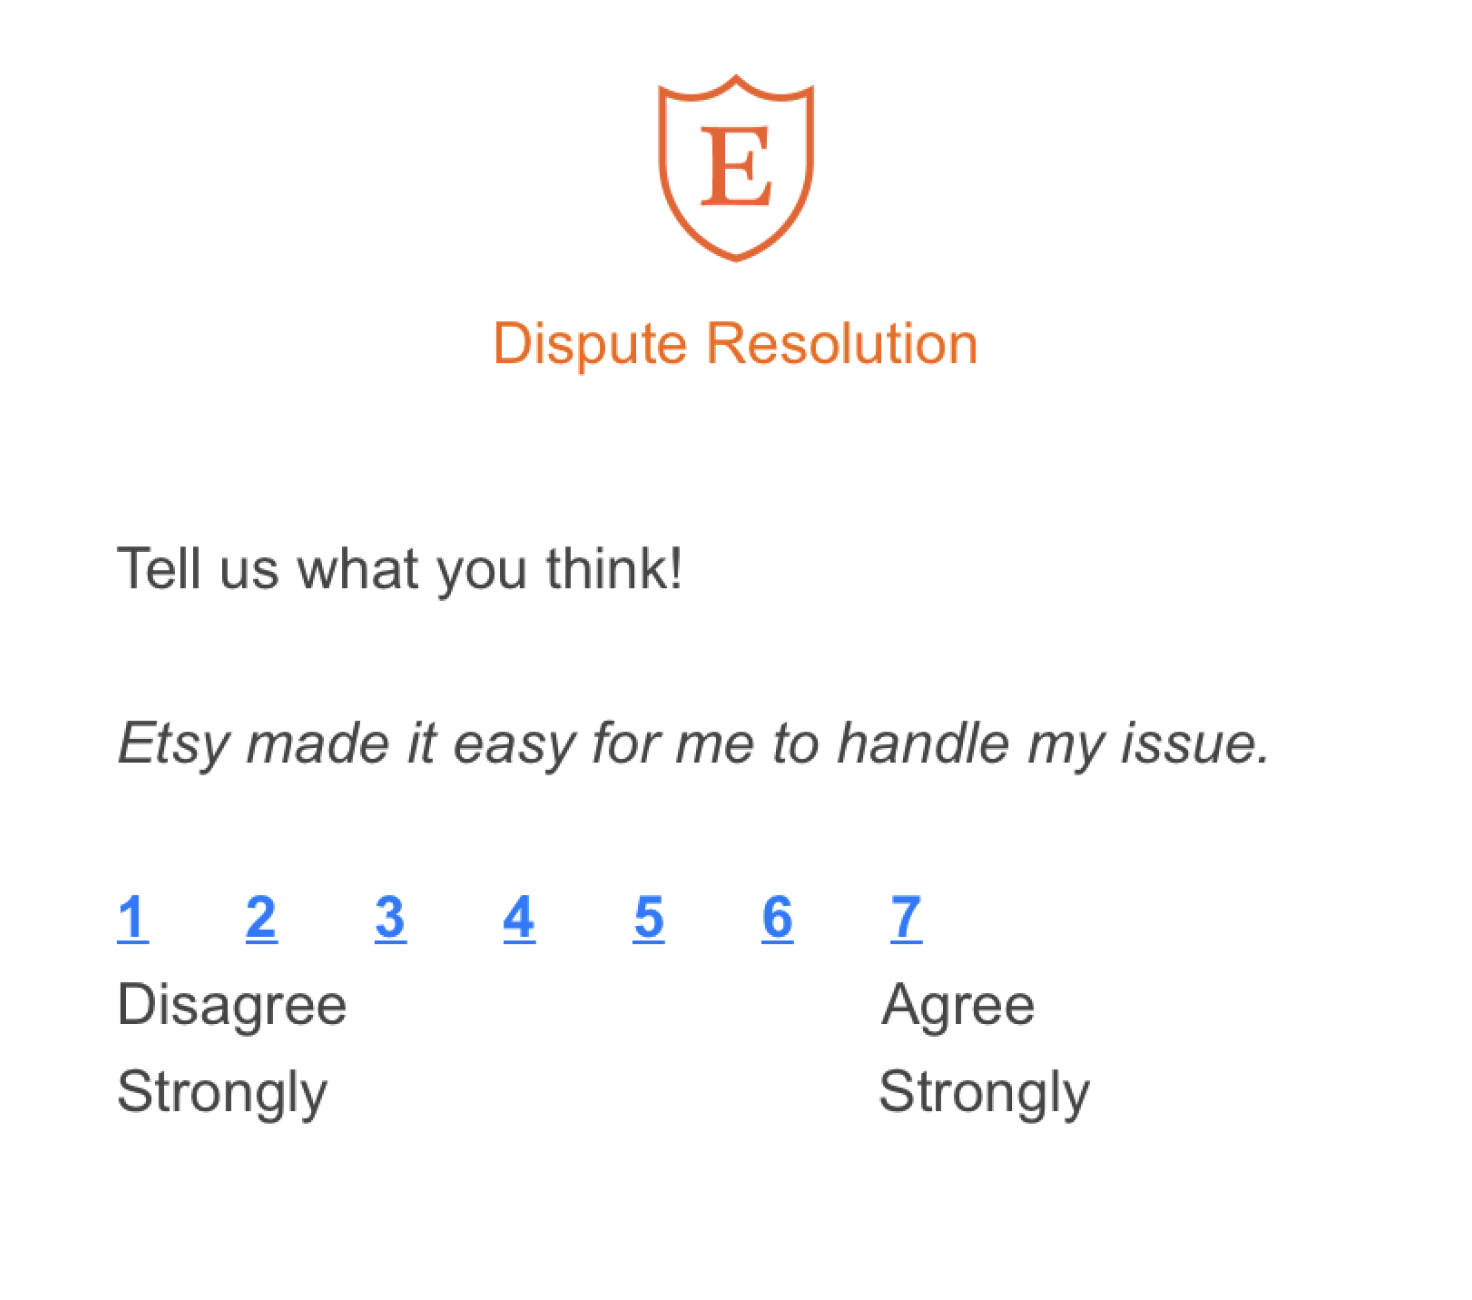 CES survey example from Etsy